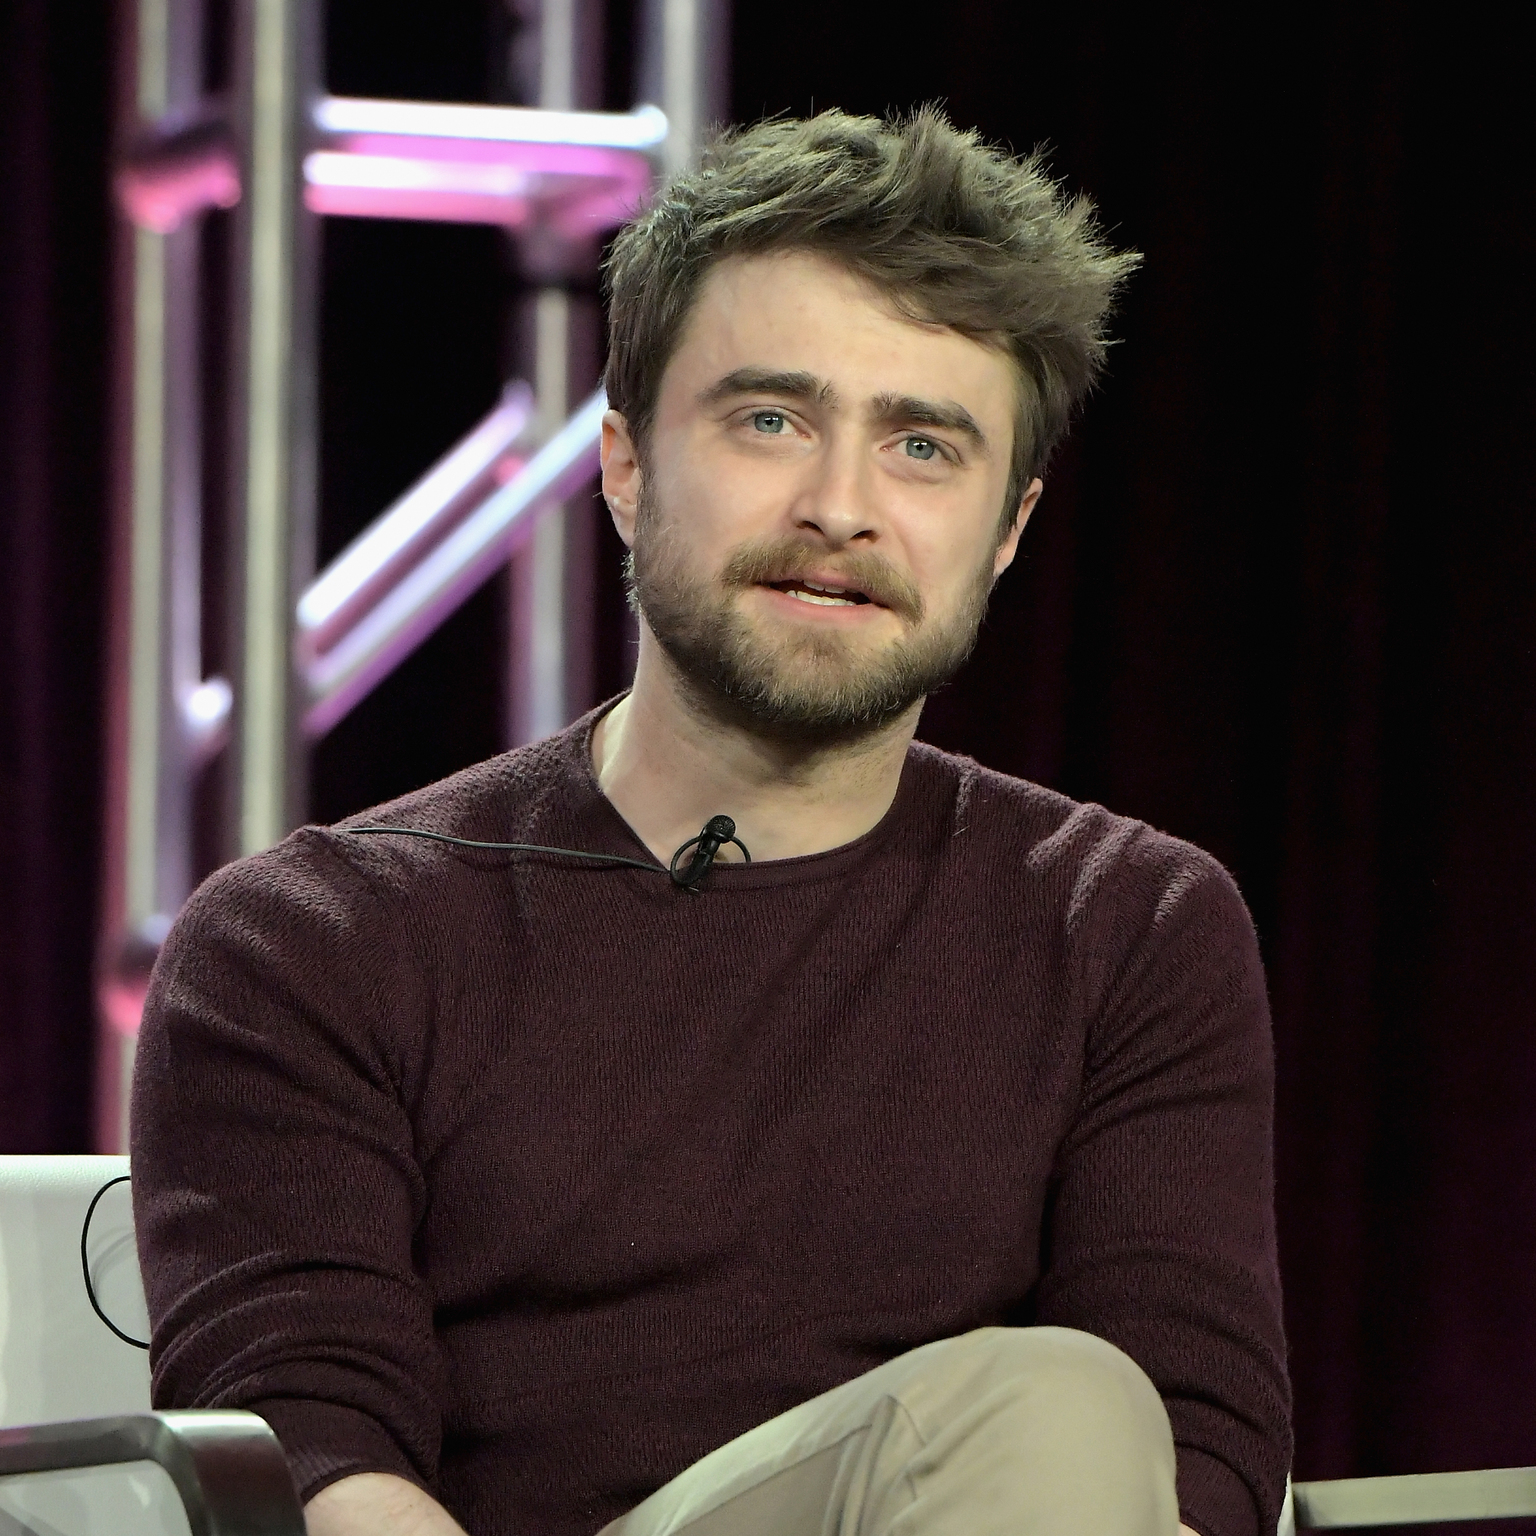 Daniel Radcliffe (Fotó: Getty Images/Charley Gallay)